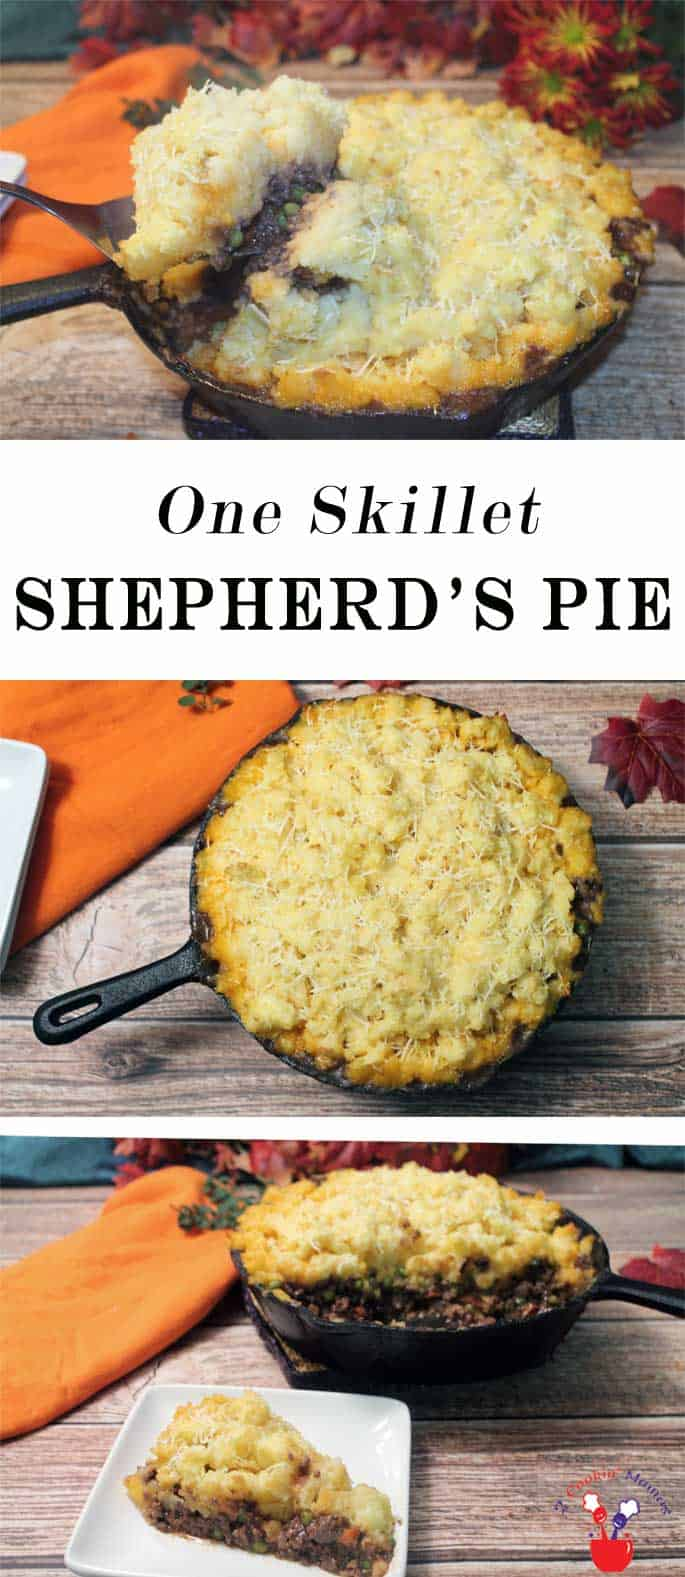 One Skillet Shepherds Pie is not only a quick & easy dinner but quick & easy clean up too! An all in one meat & potatoes dinner sure to satisfy everyone. #dinner #quickandeasymeal #groundbeef #oneskillet #recipe